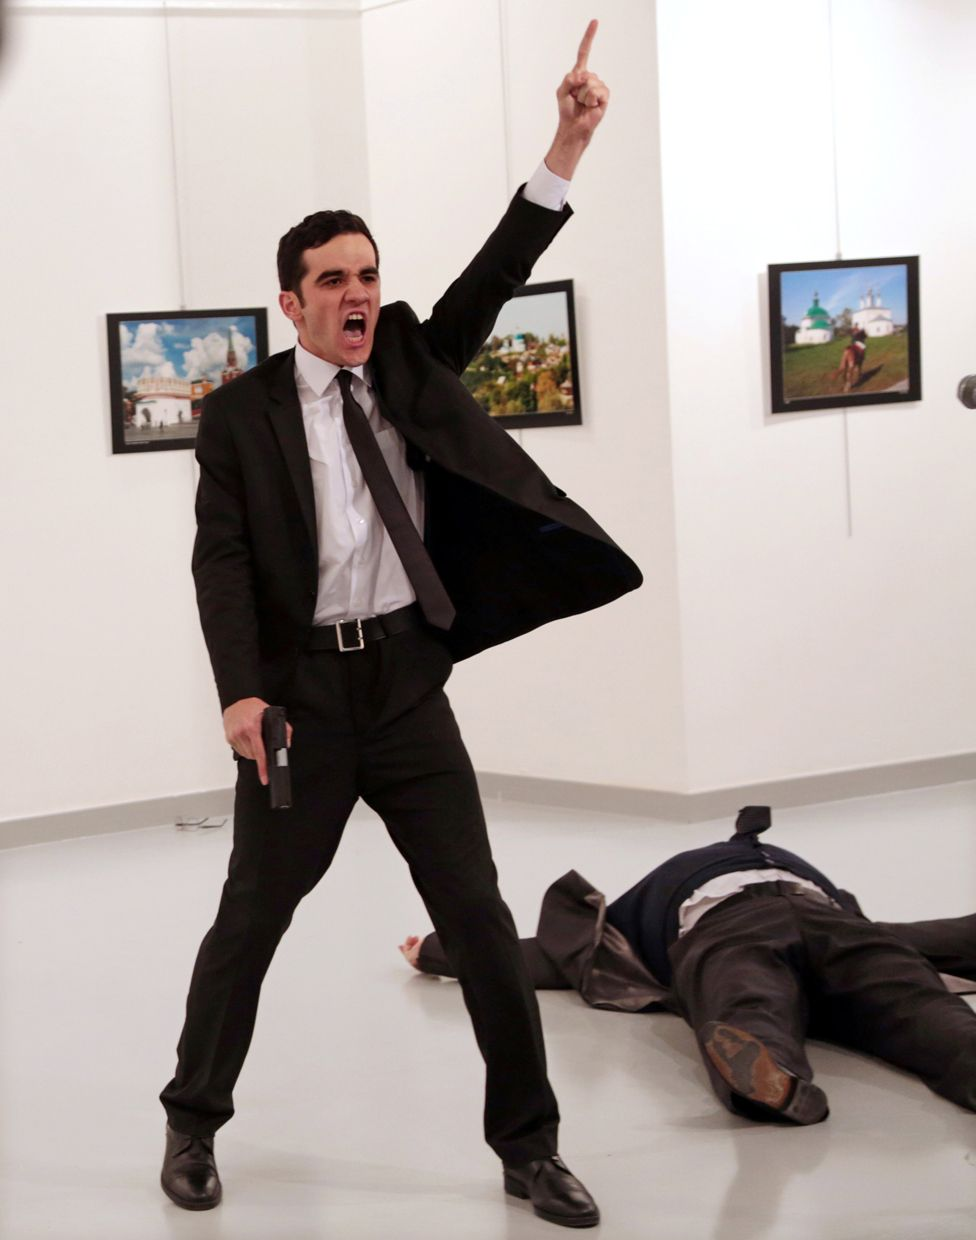 The best photos of World Press Photo 2017: from the killer of the ambassador to the newborn panda